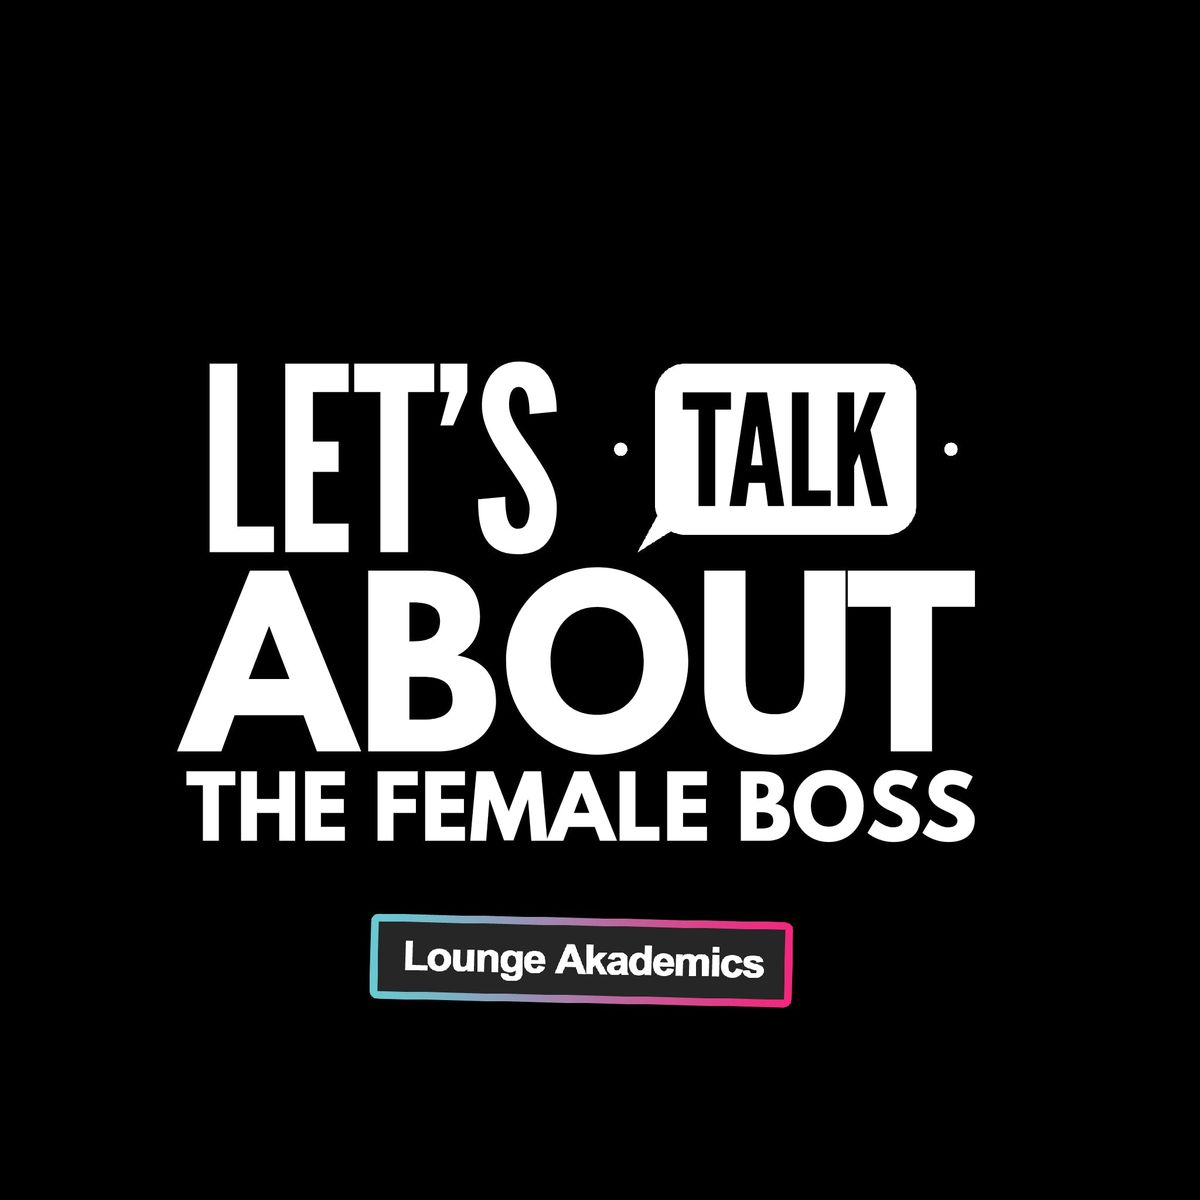 Lets Talk About the Female Boss